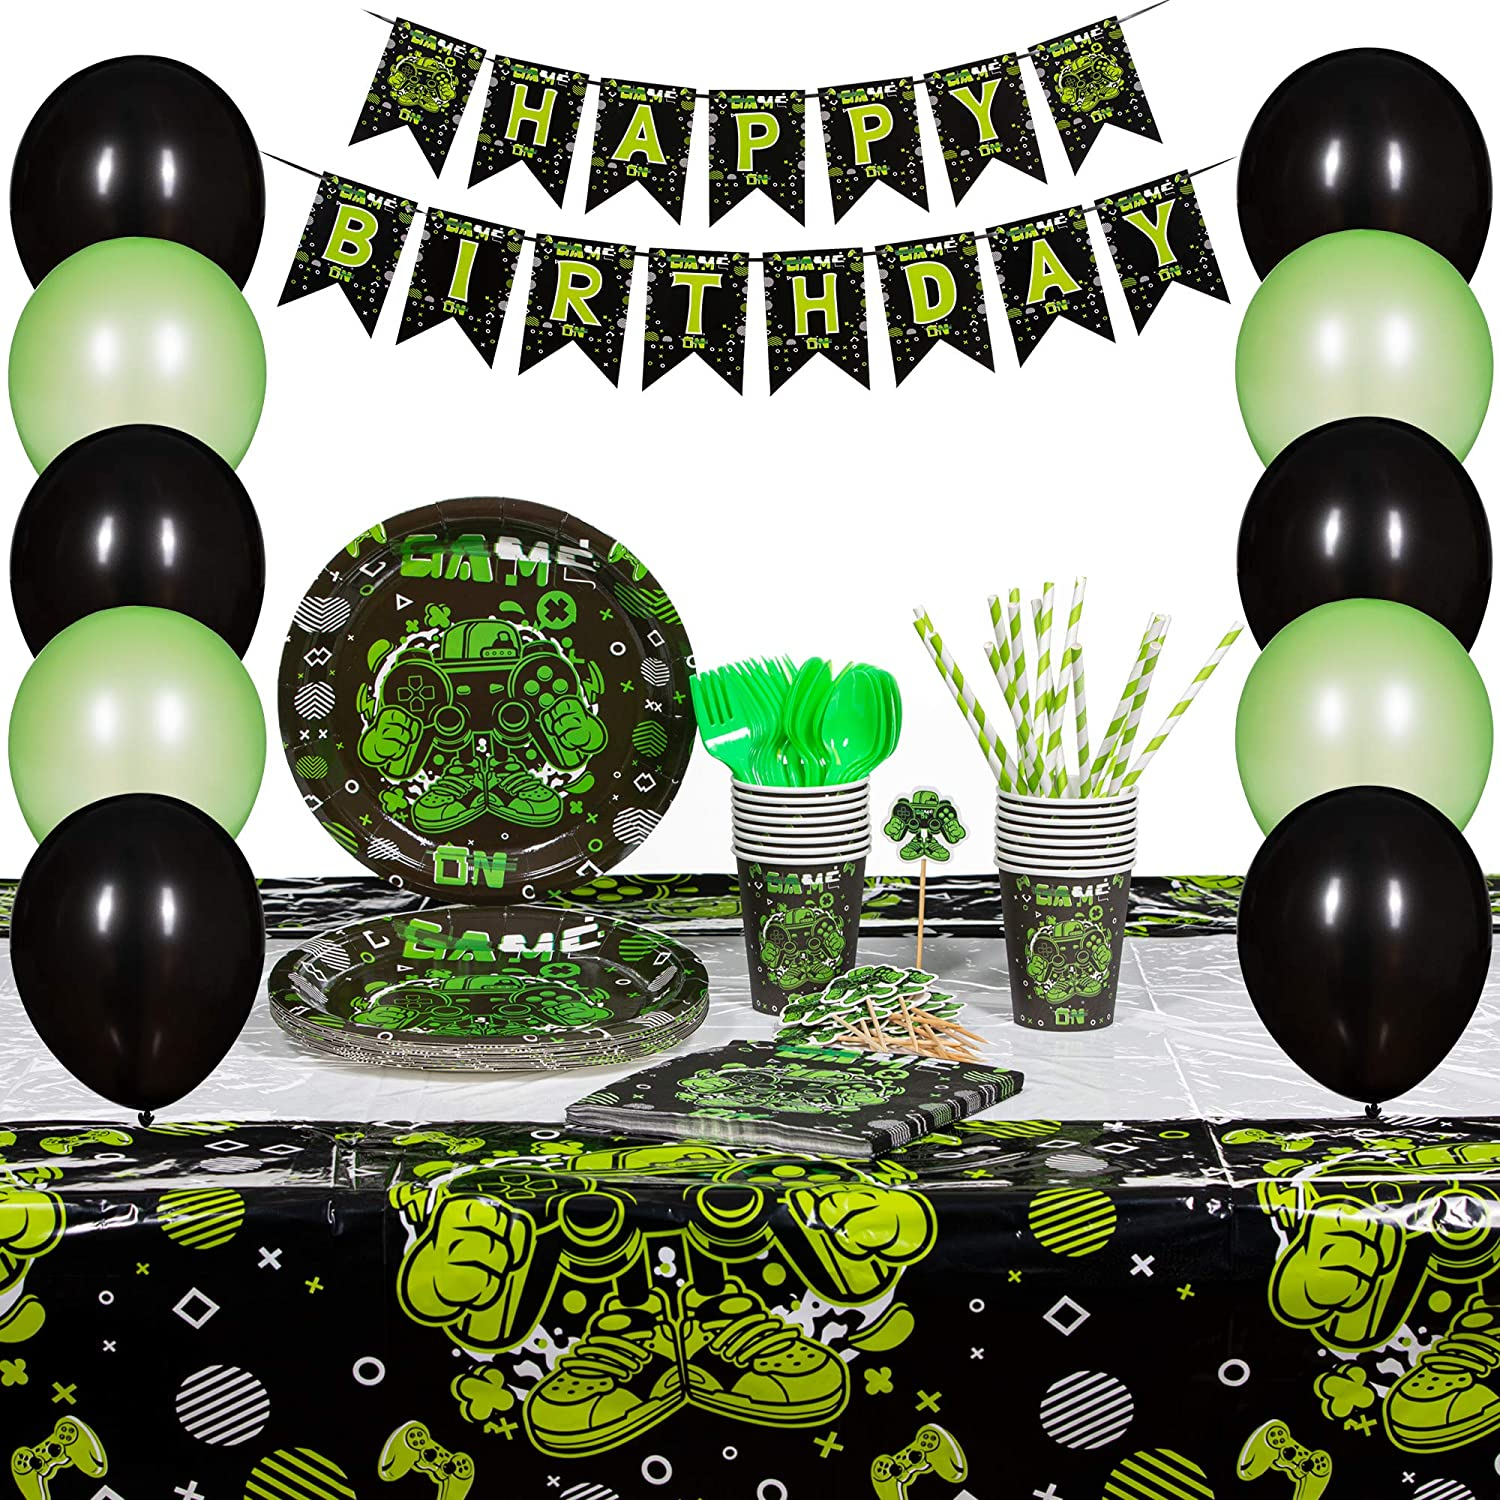 Innohero Video Game Party Supplies 124 Piece 16 Guests Includes Happy Birthday Banner Tablecloth Balloons Straws Cupcake Topper Plates Cups Napkins Forks Spoons